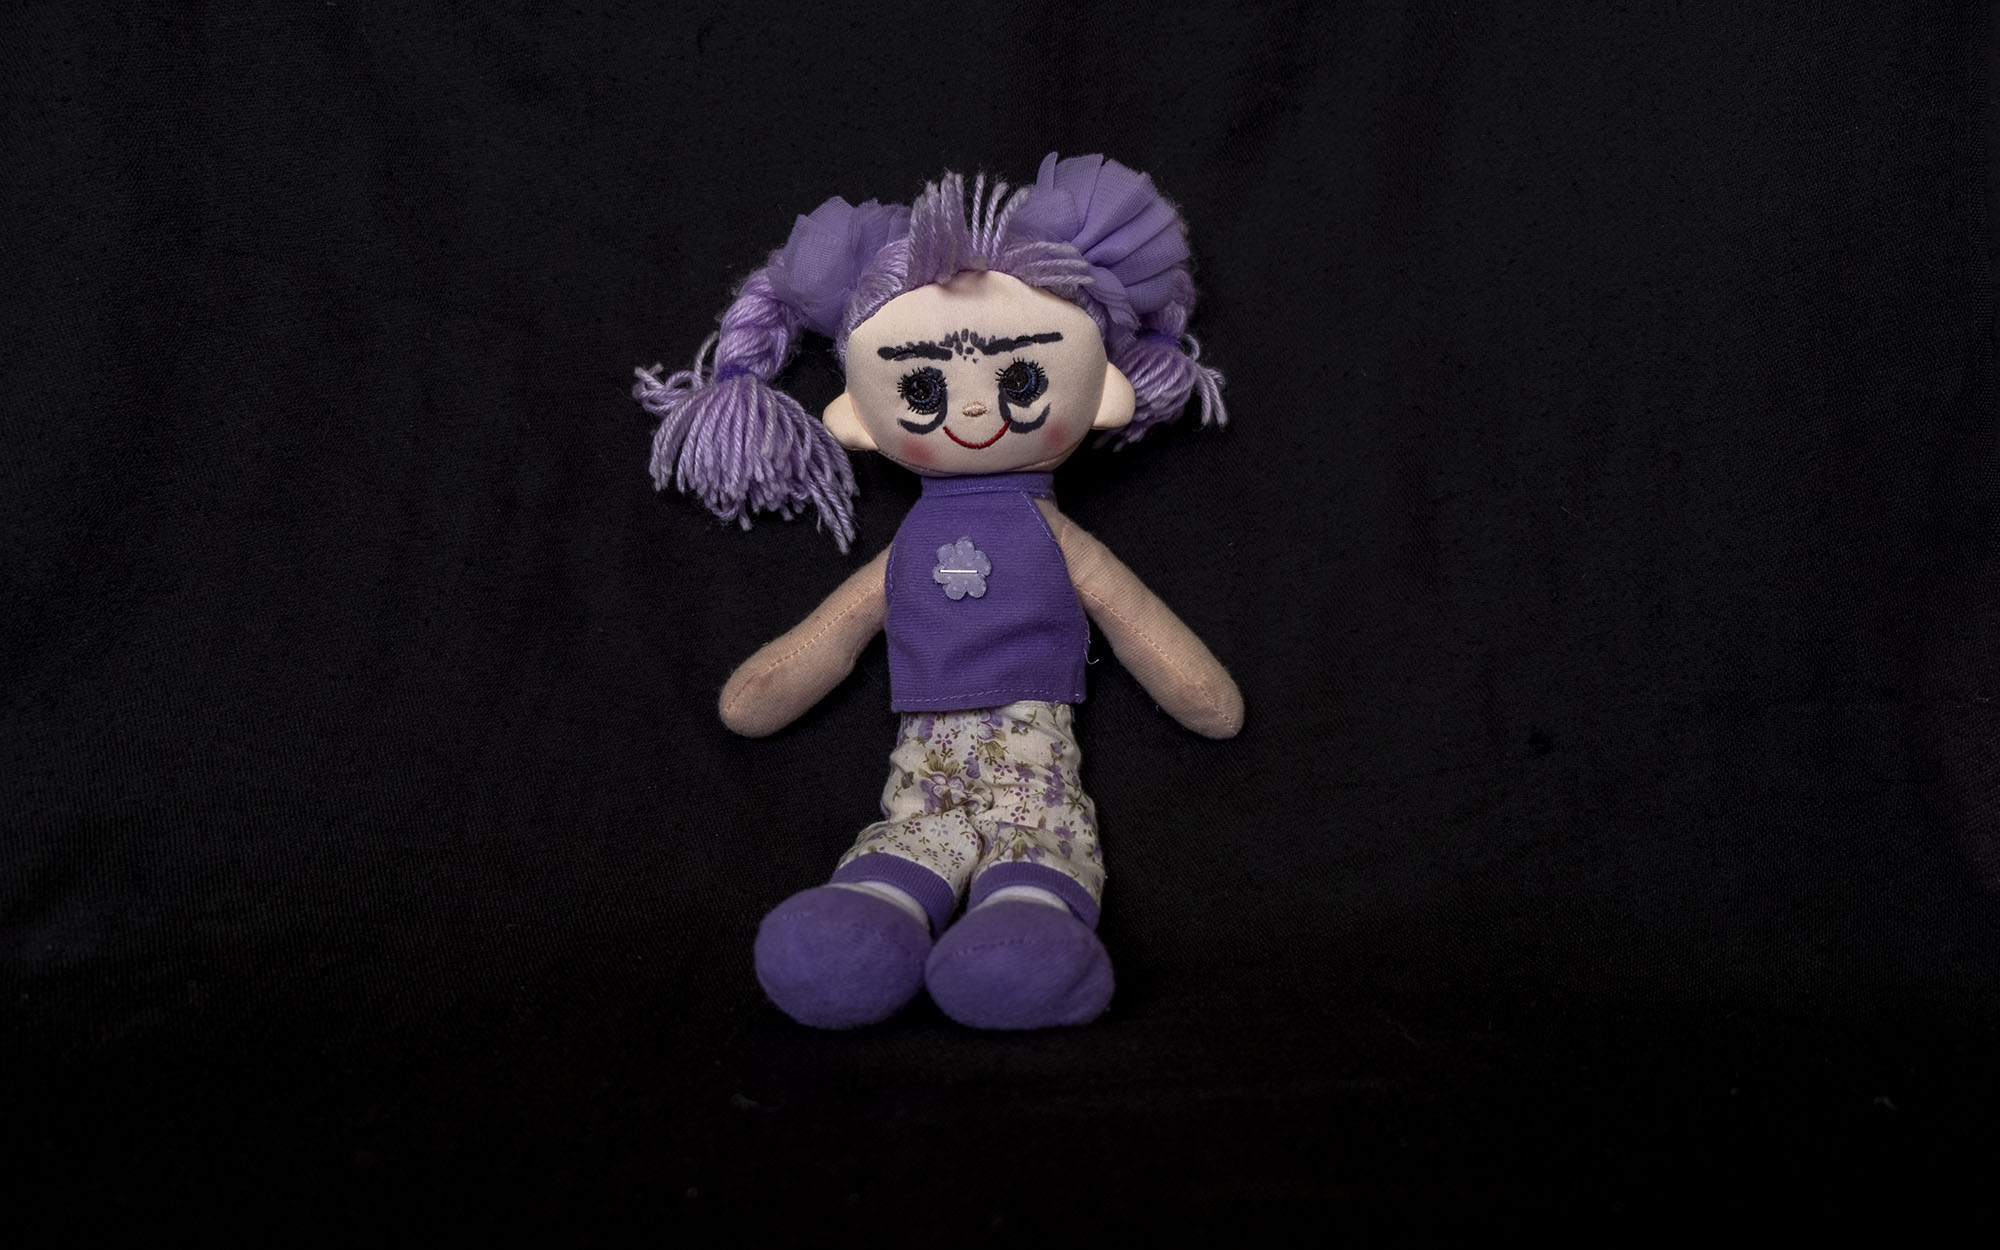 Smiling plush doll with purple hair, a purple singlet, purple shoes, and cream pants with purple flowers and hem